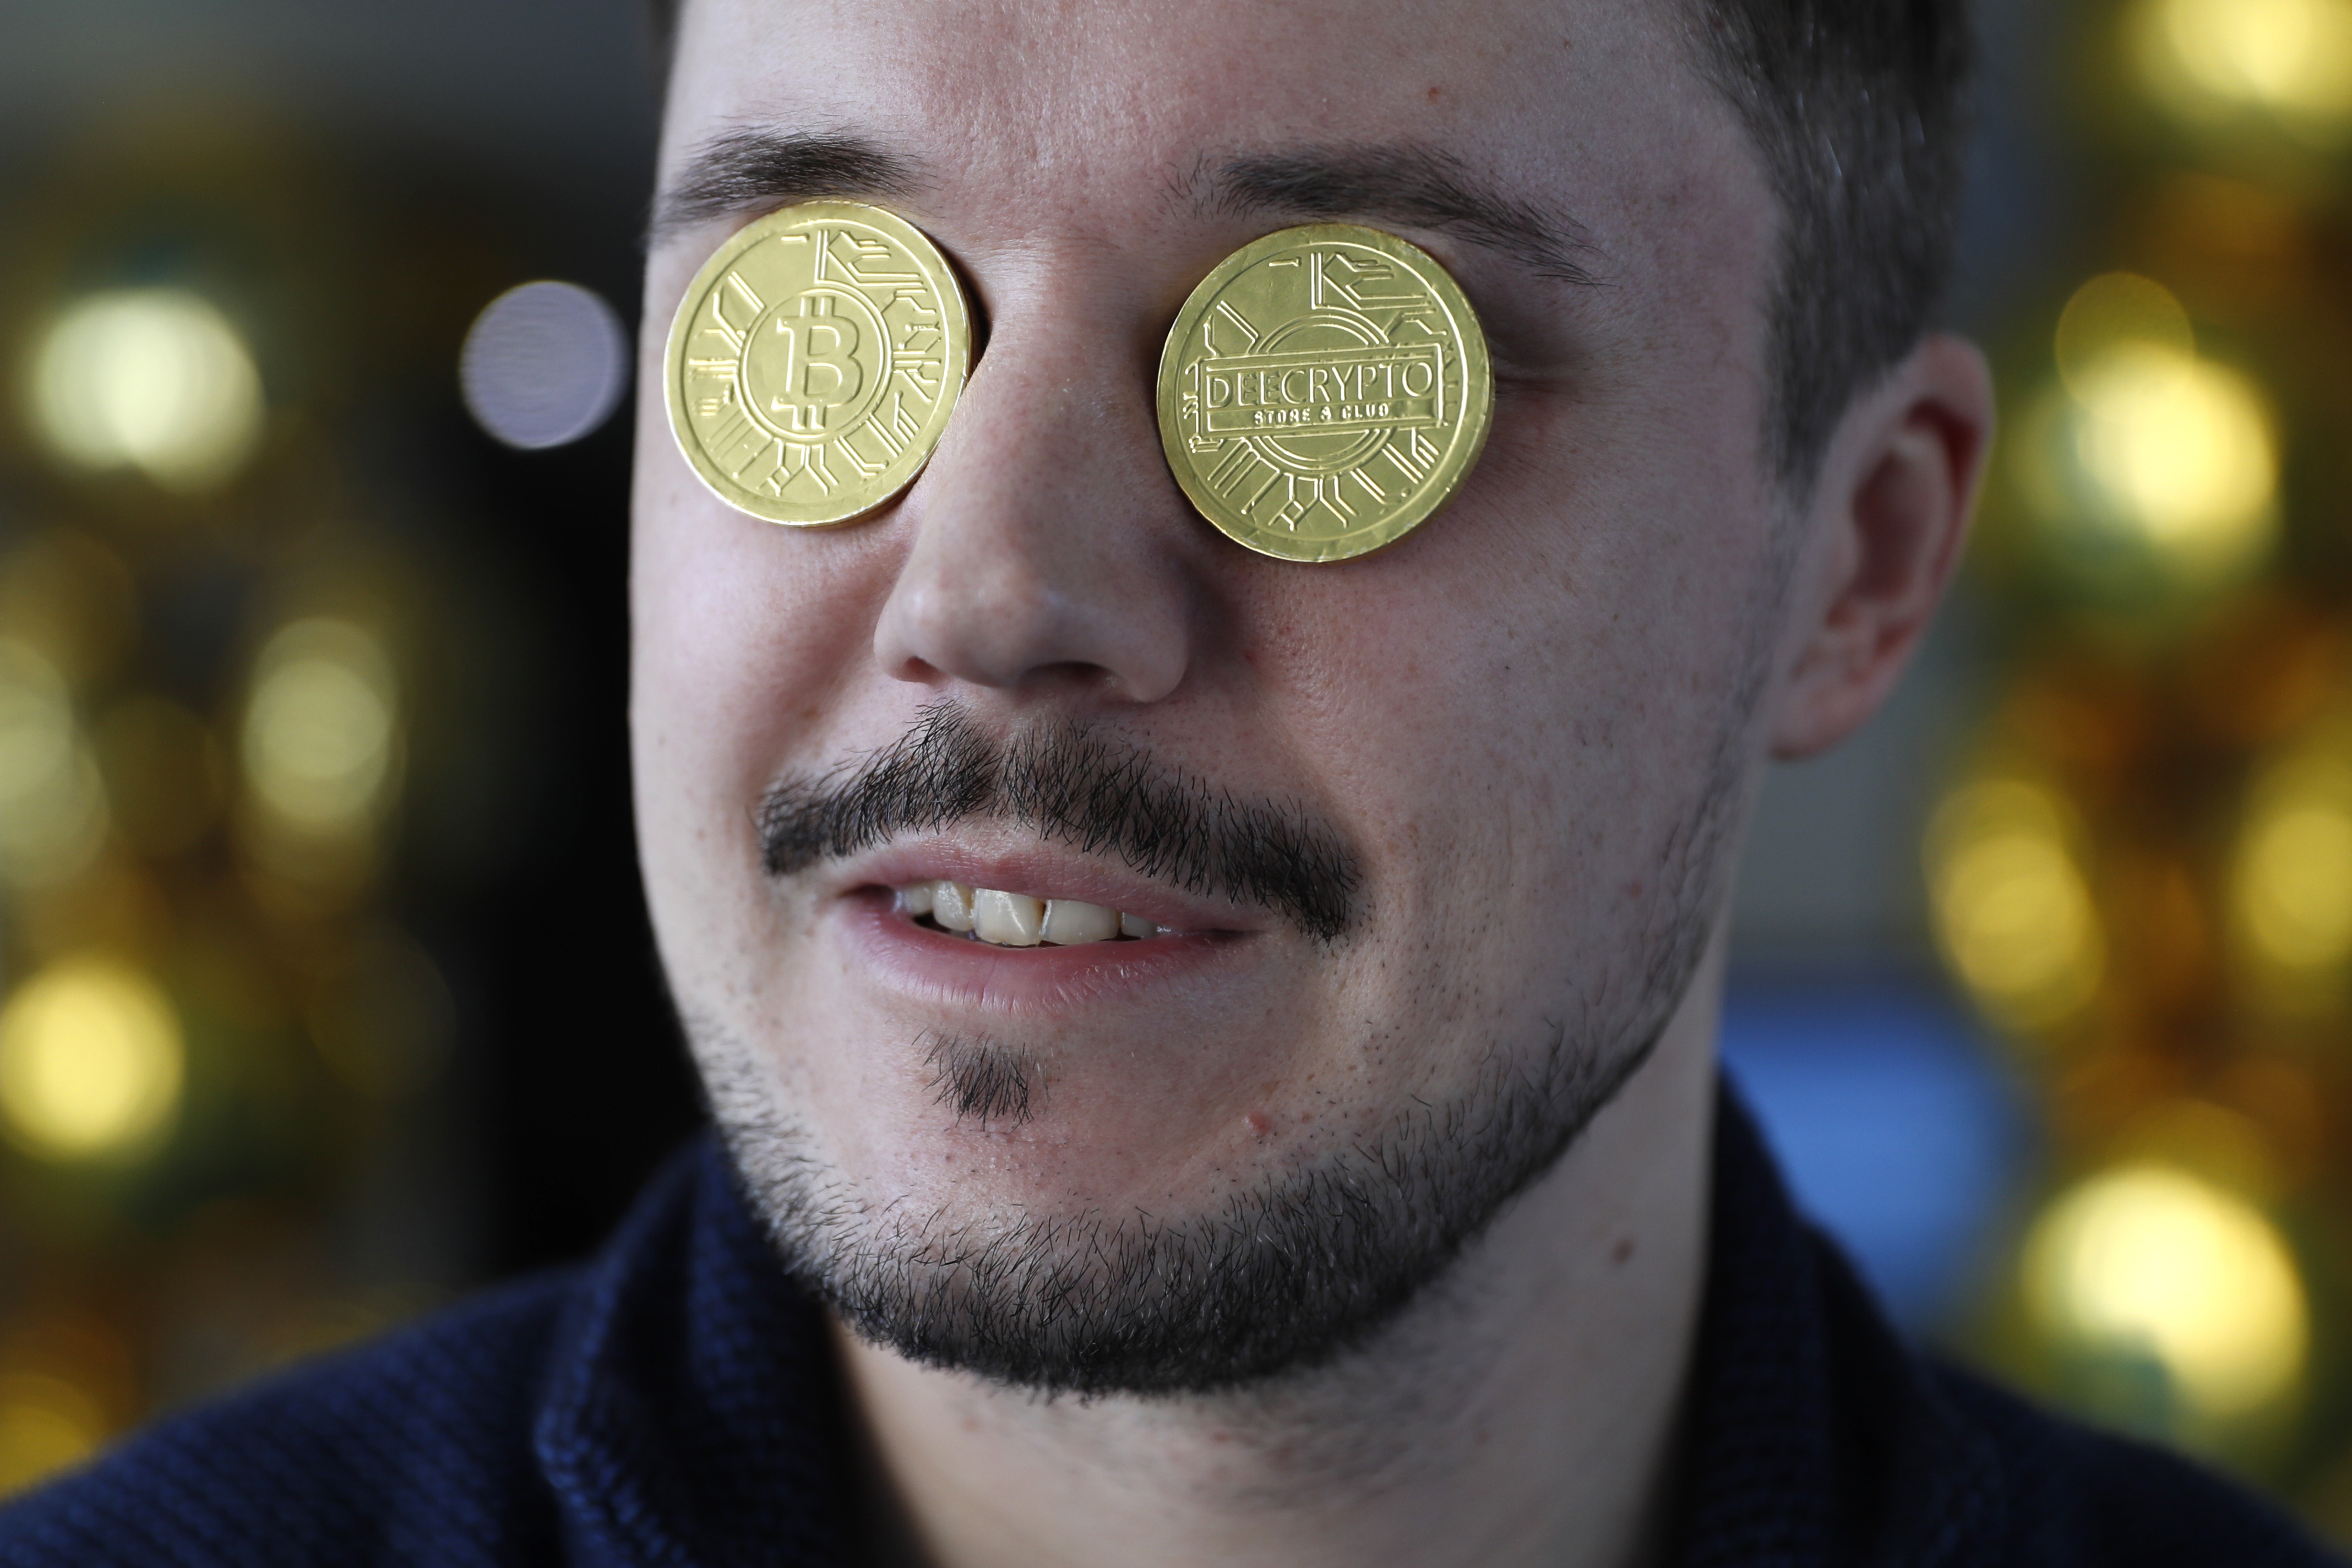 A man's face with gold coins representing bitcoins over his eyes.